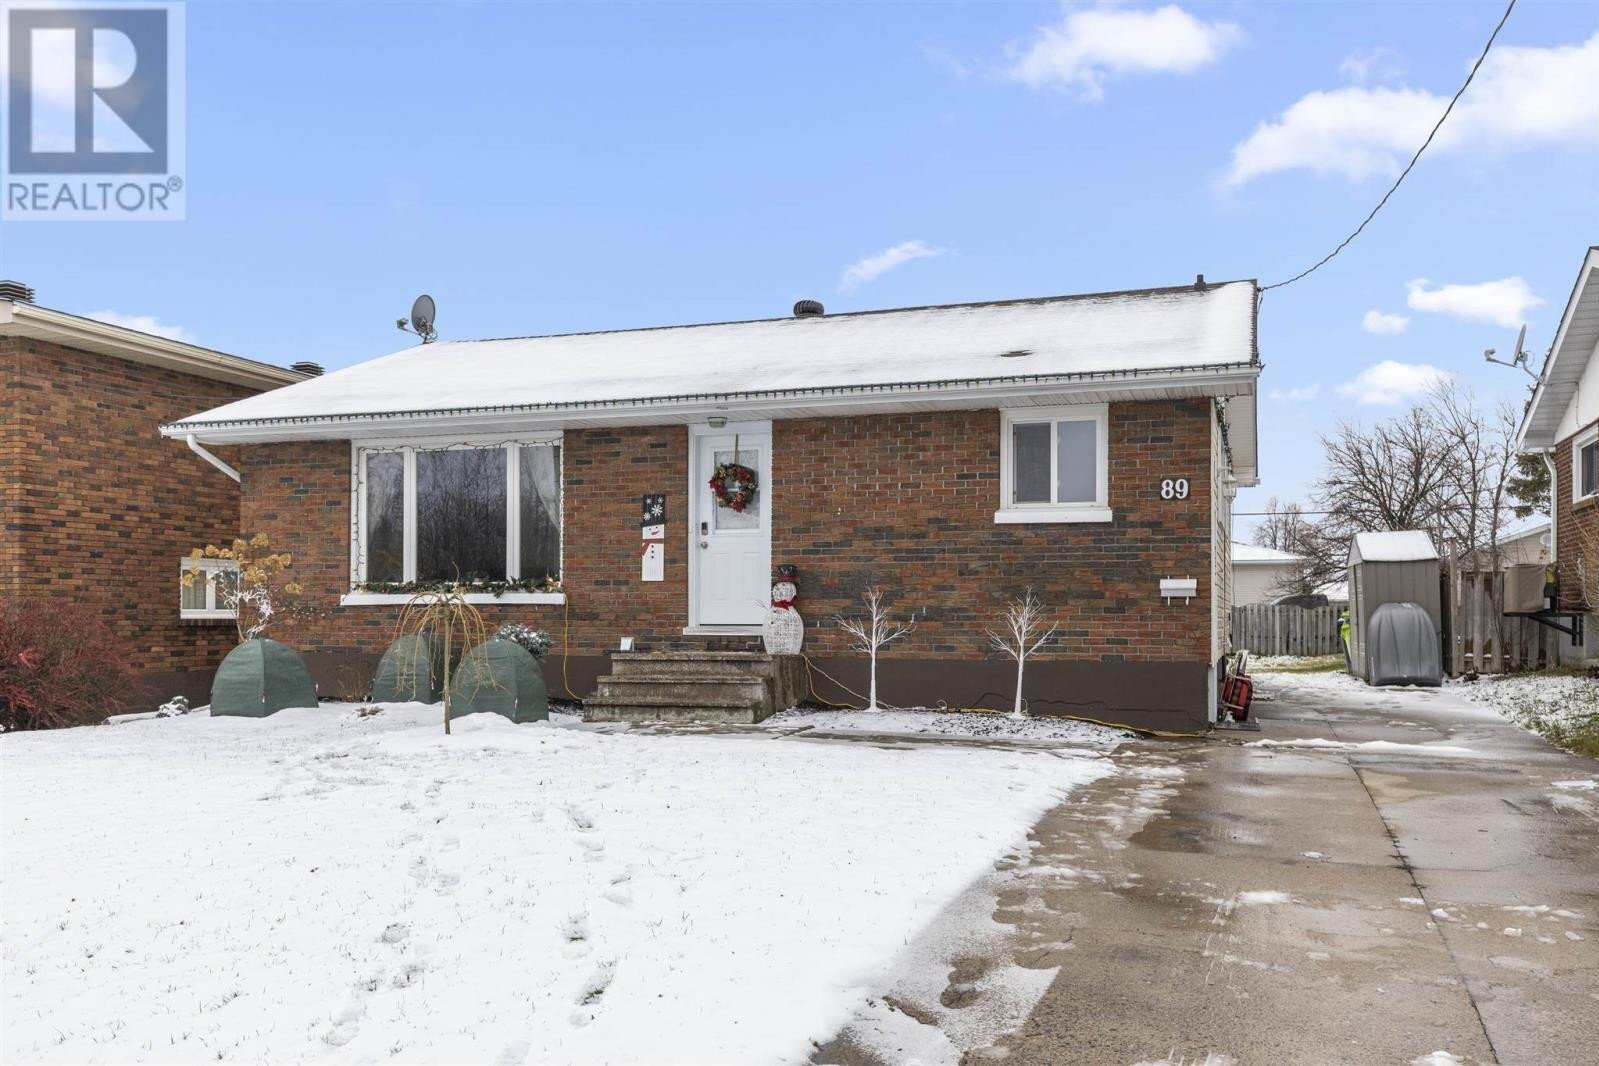 House for sale at 89 Moluch St Sault Ste. Marie Ontario - MLS: SM130357